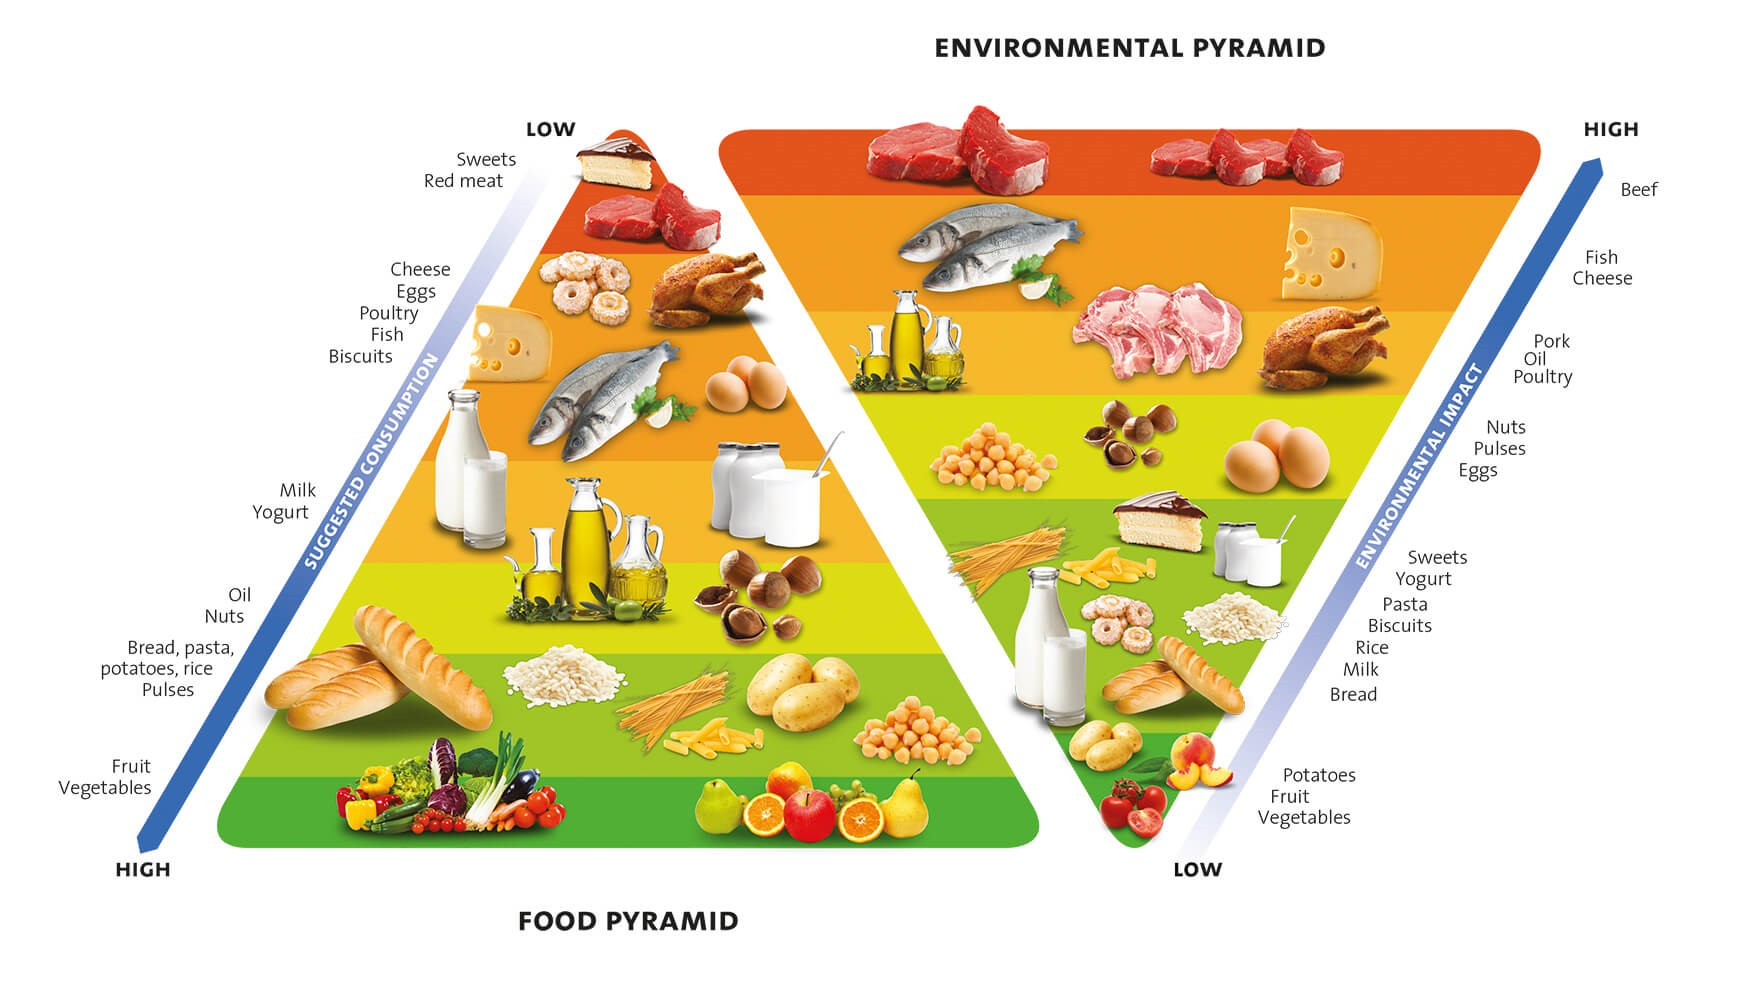 Food Pyramid Barilla Center for Food & Nutrion (2015)